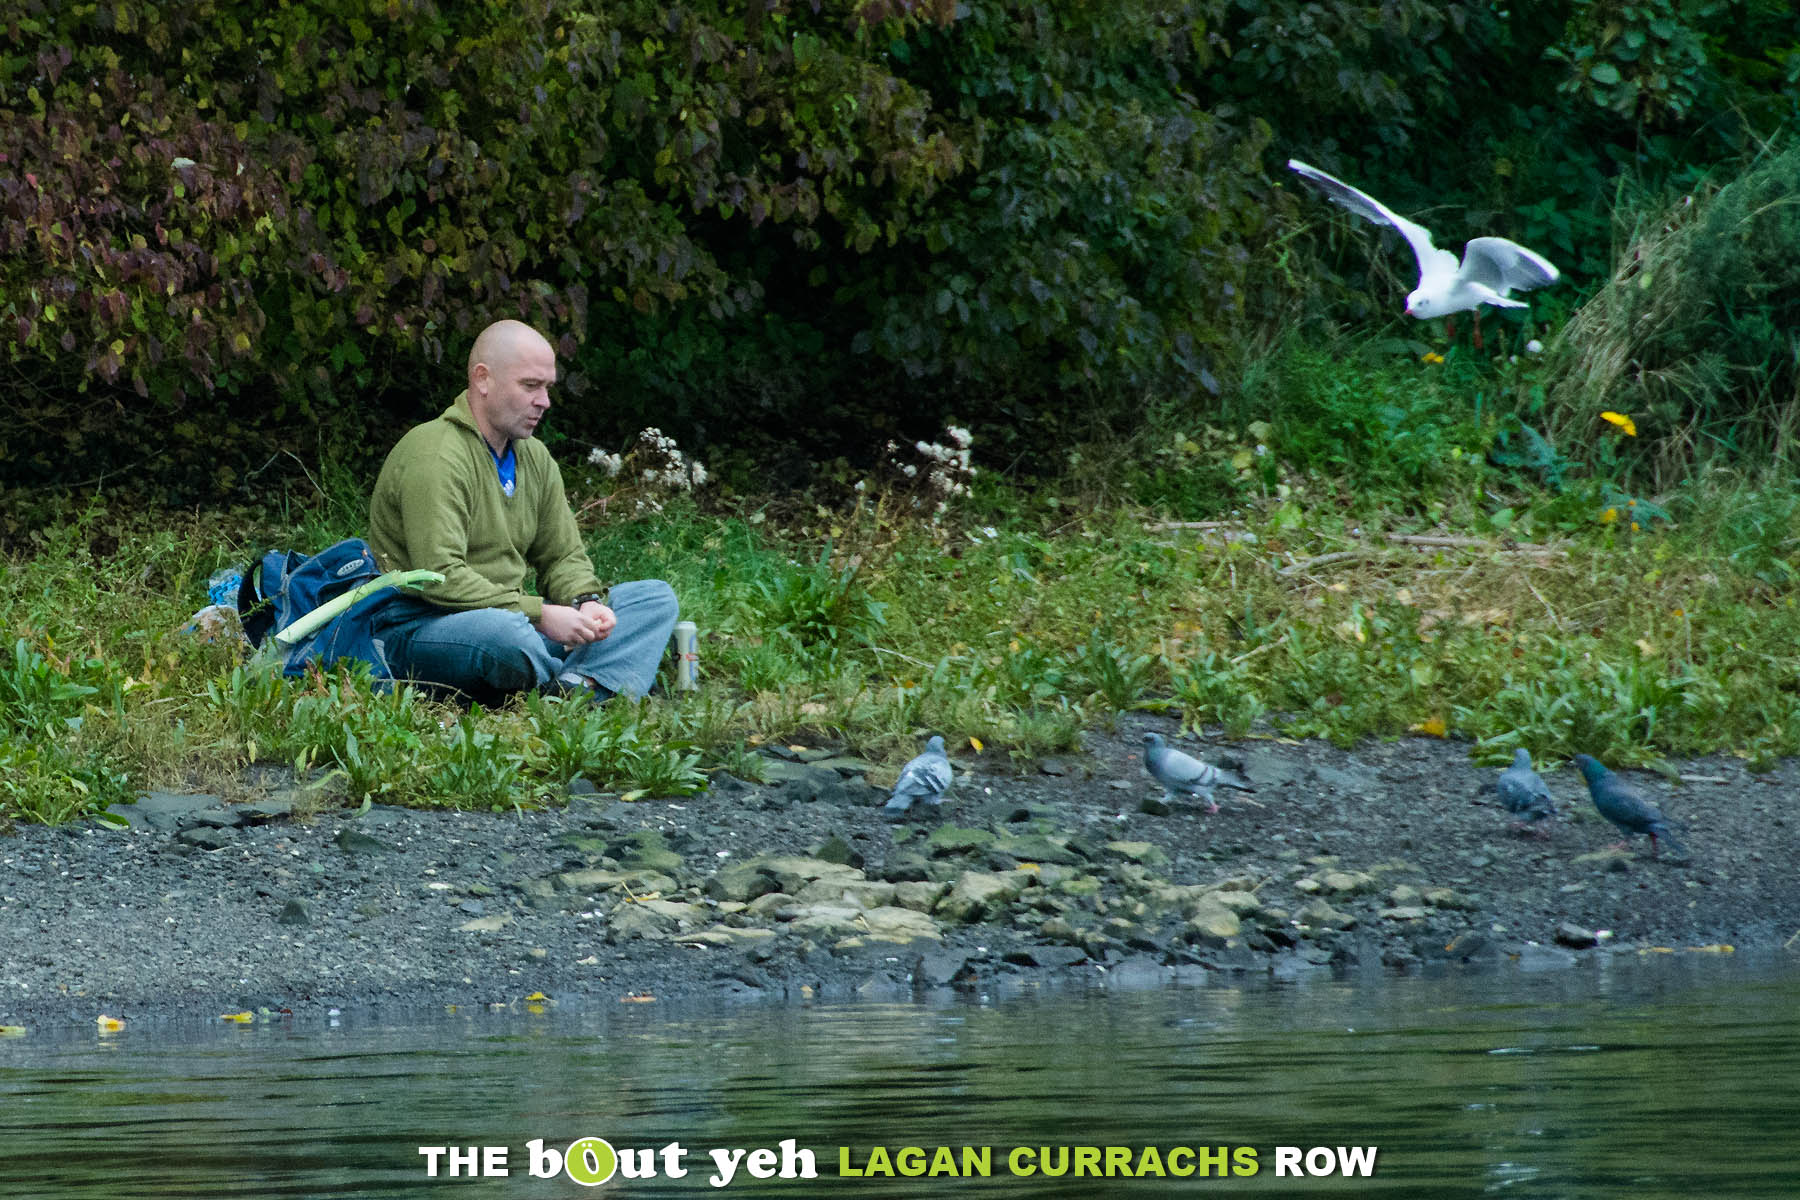 A man sits on the side of the River Lagan feeding birds, as seen from the Bout Yeh Lagan Currachs row - photo 9219.